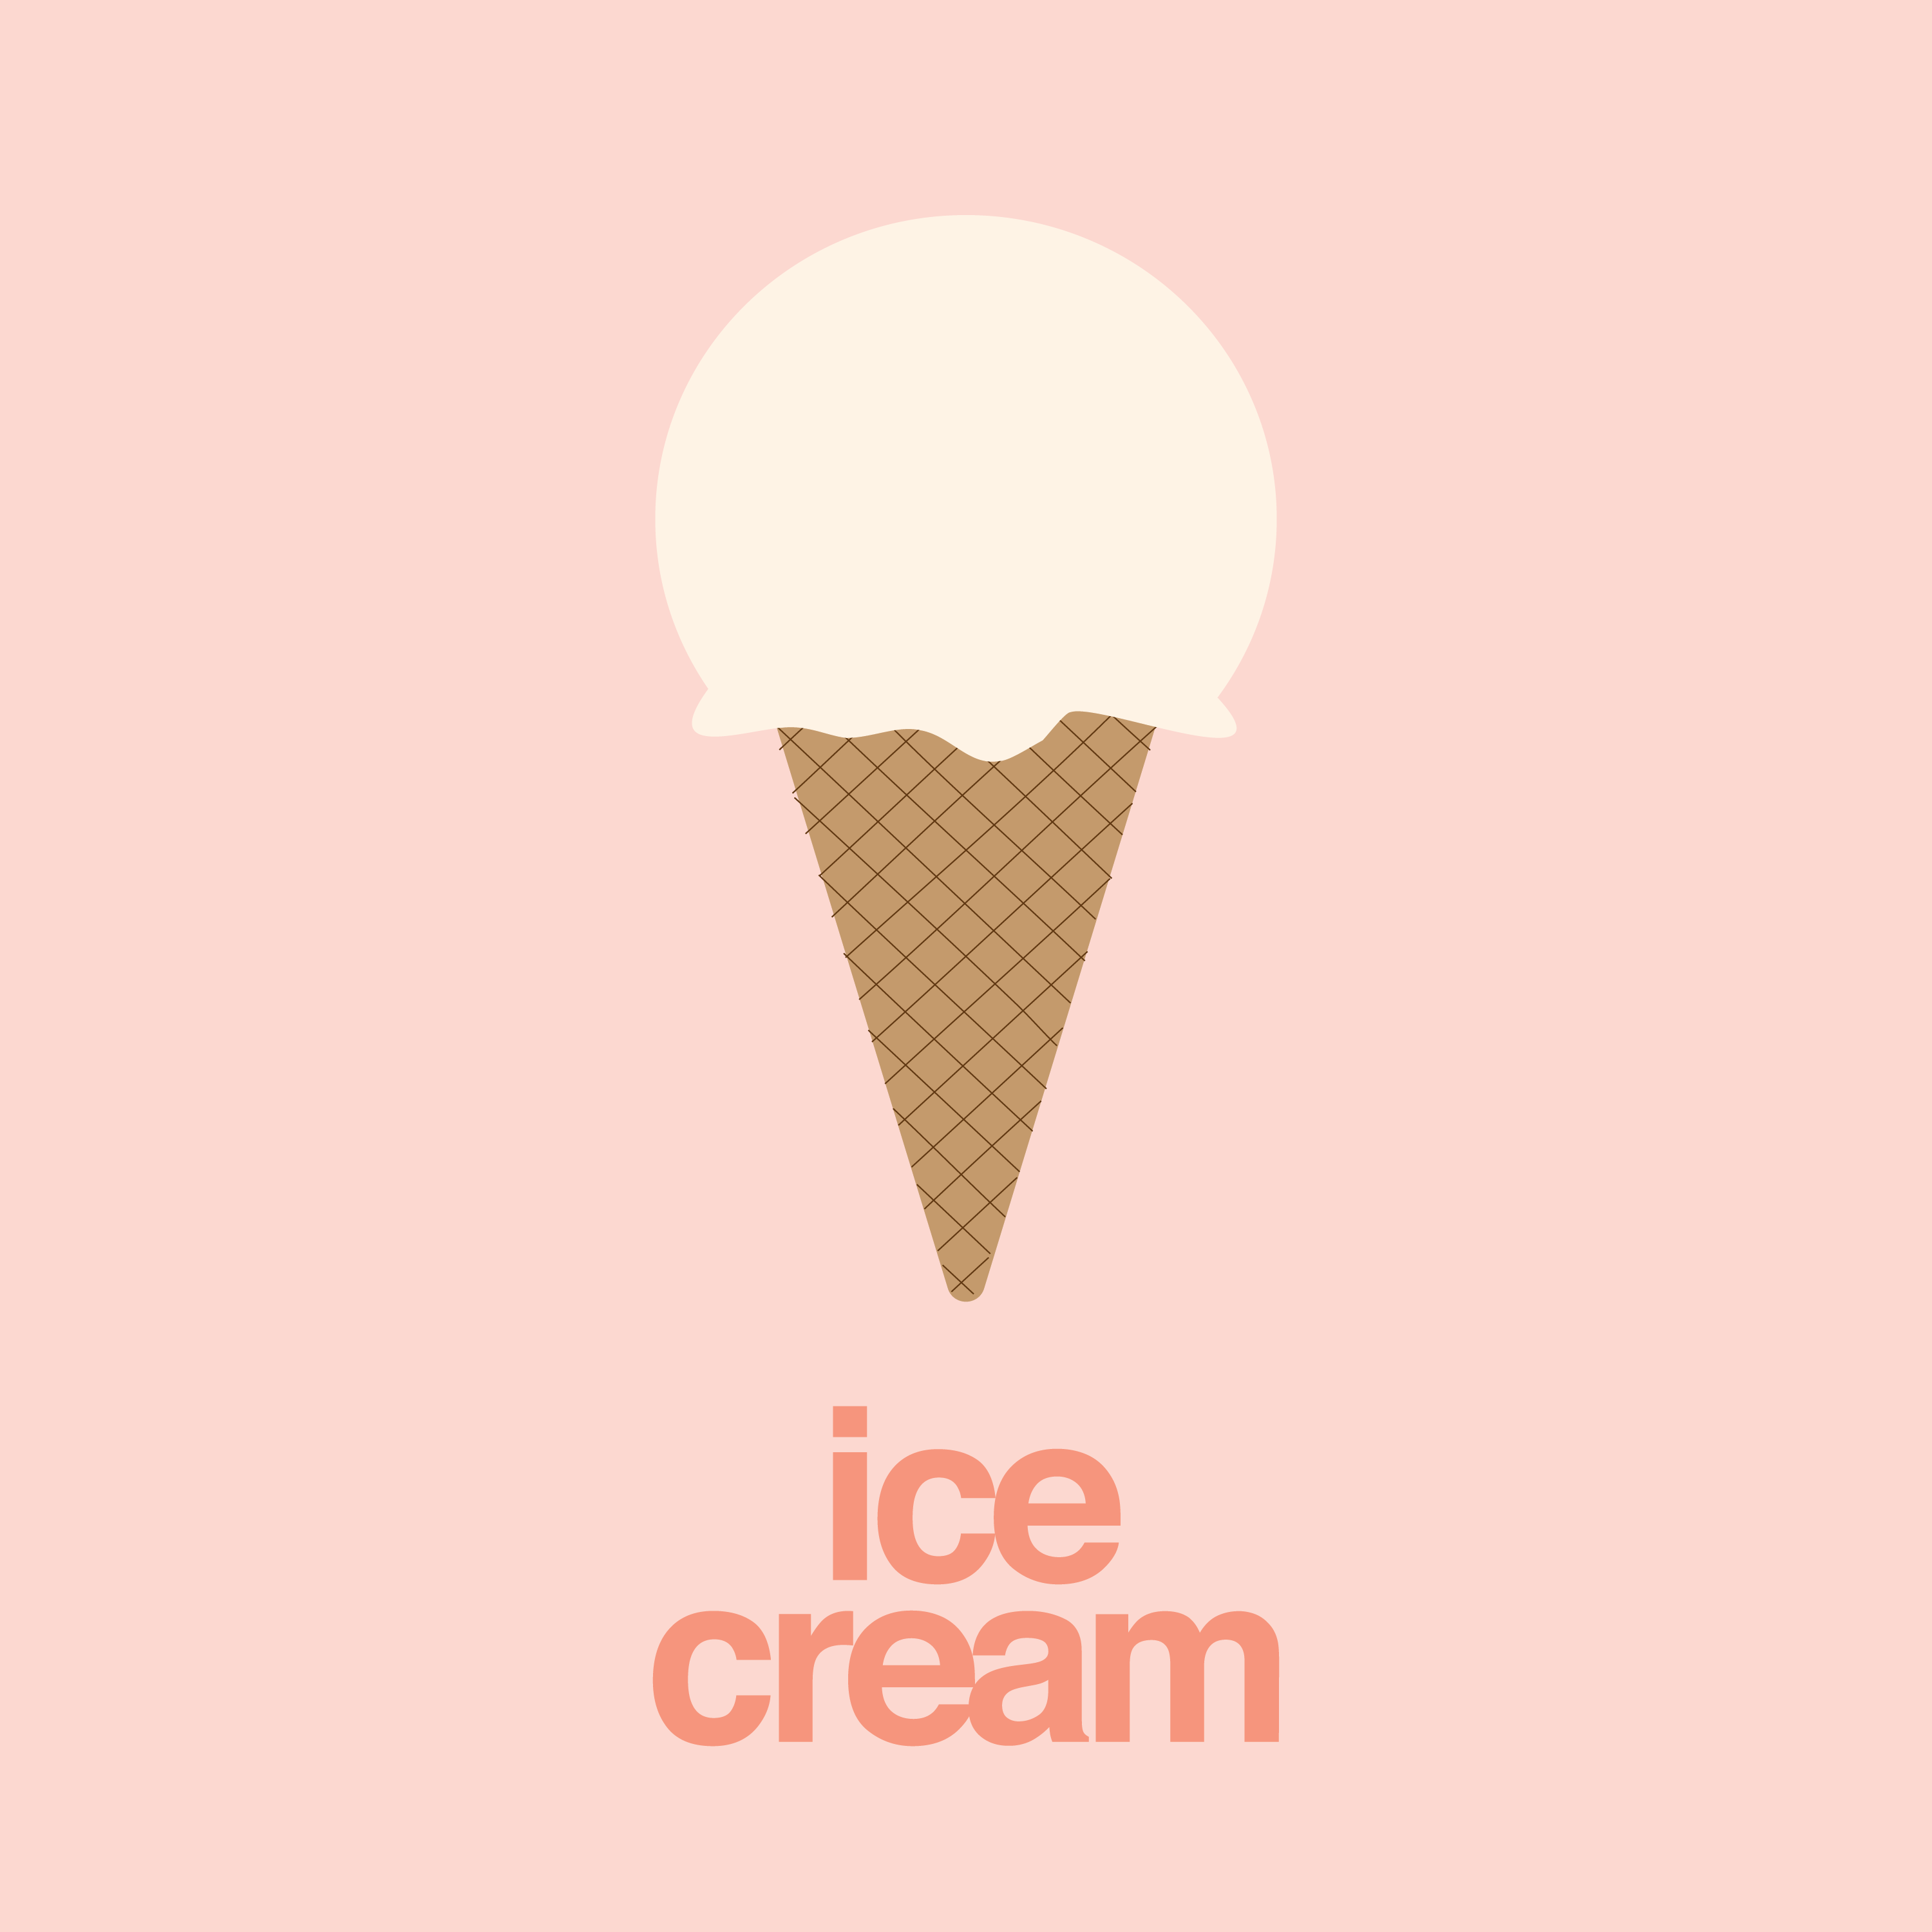 Melting Ice Cream Simple Wallpaper Designs: Pin By Carly Giles On GDES Projects